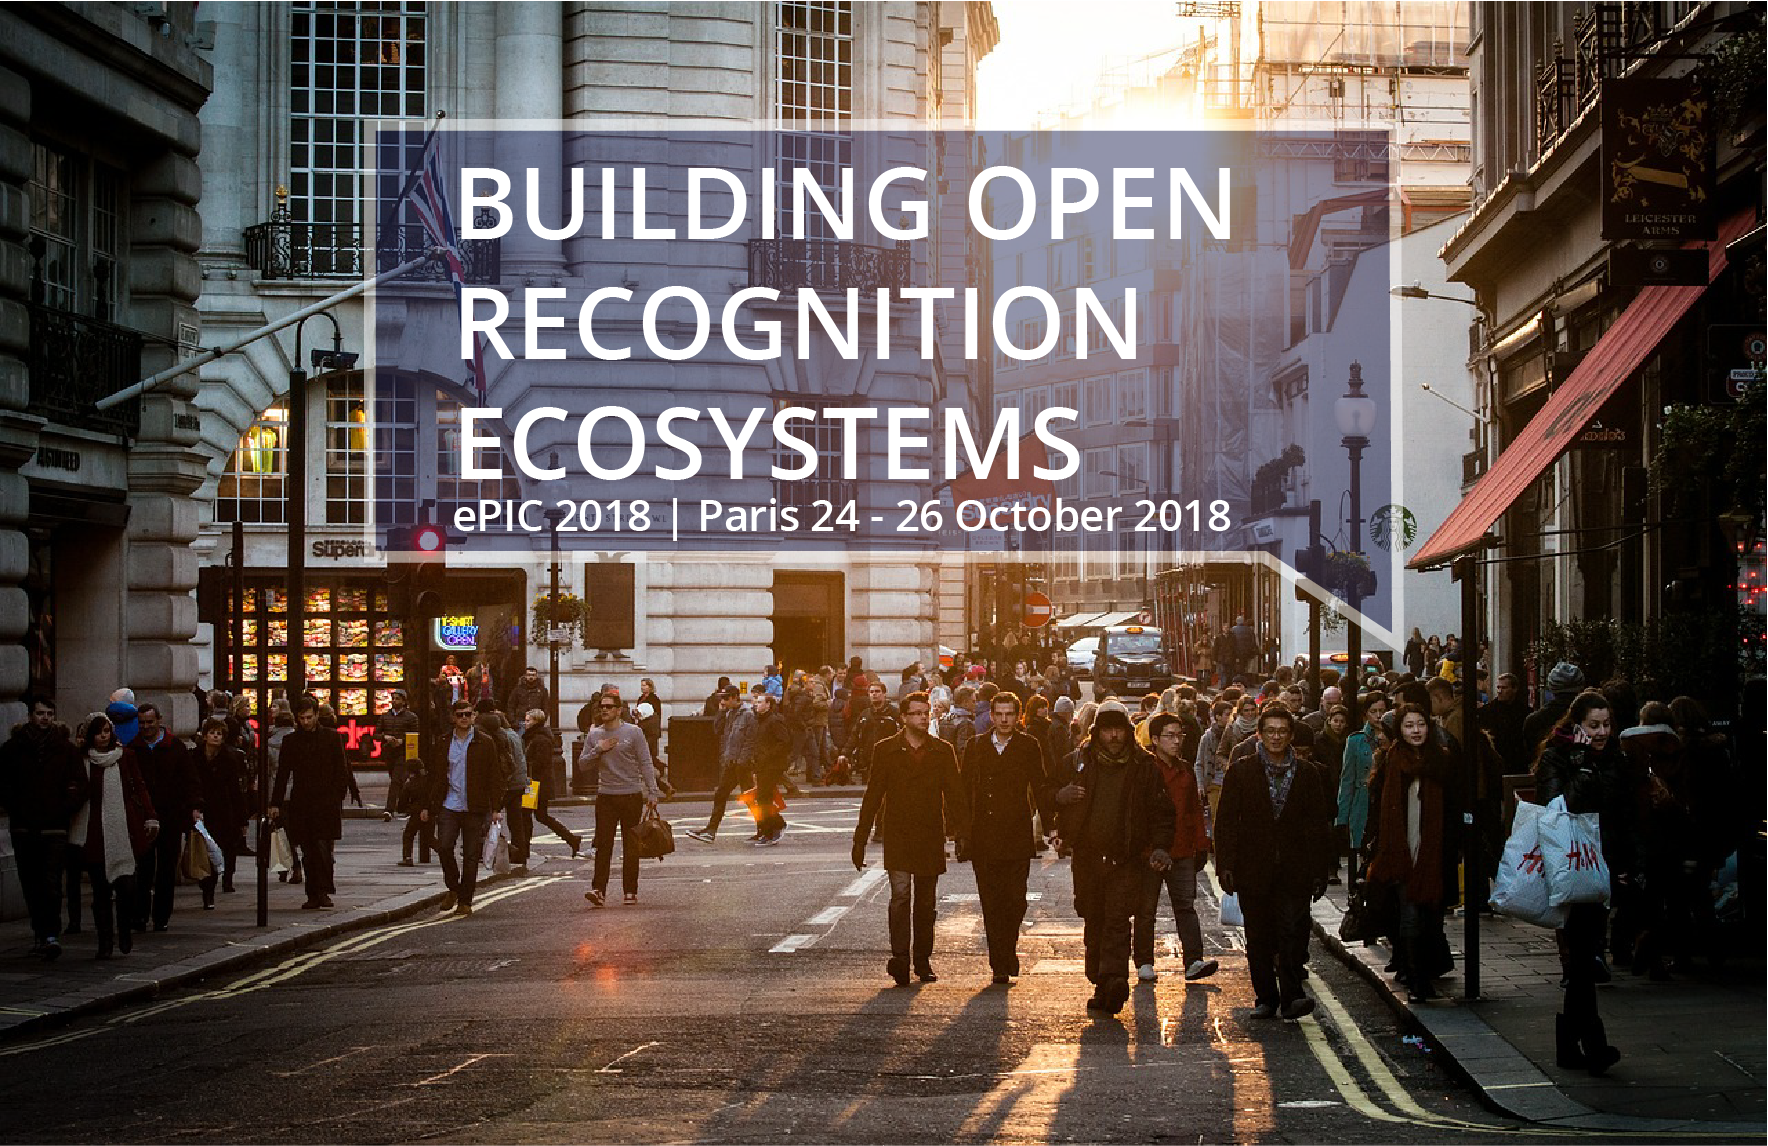 Building Open Recognition Ecosystems